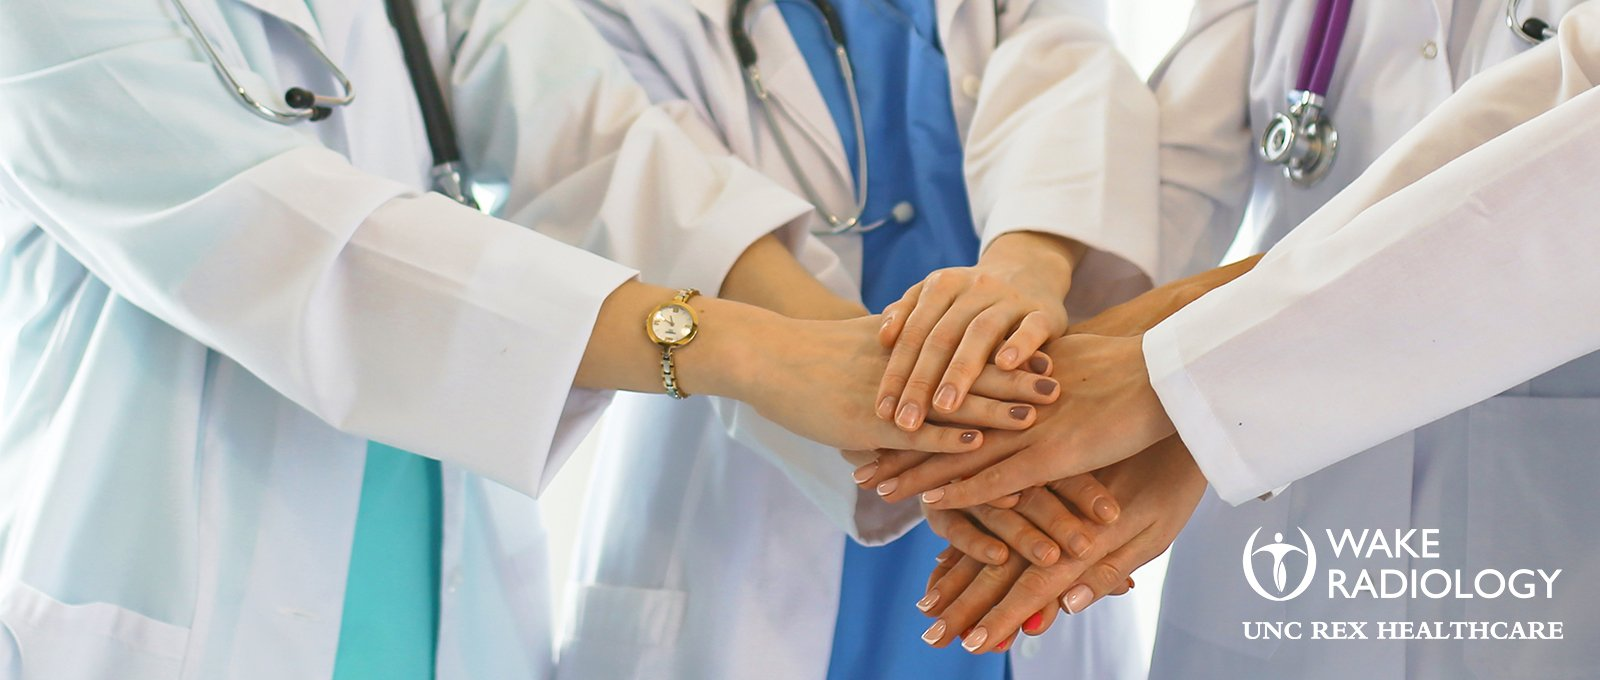 Picture of medical team joining hands